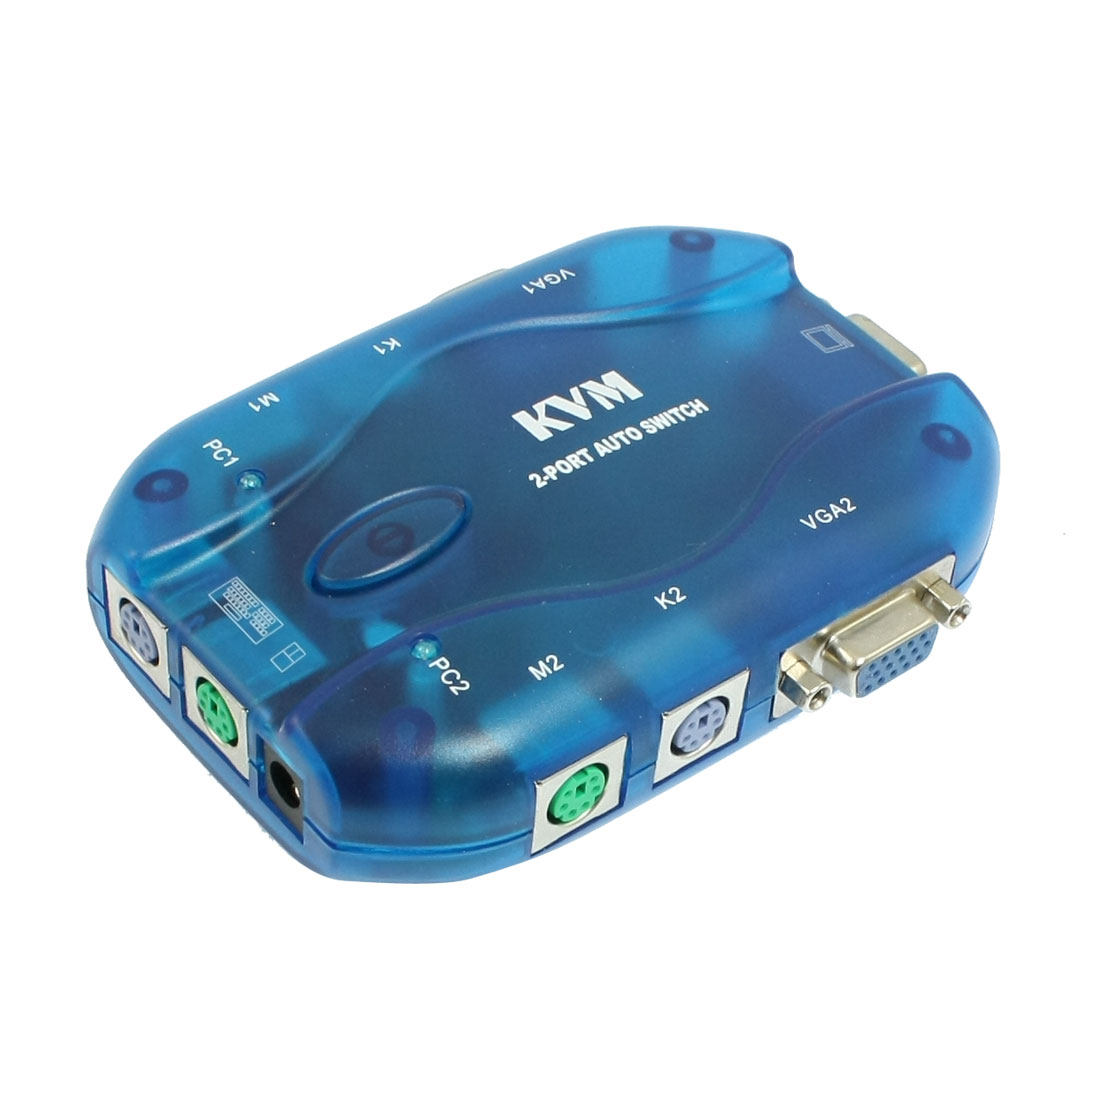 Sea Blue Plastic Shell PS/2 2 Ports PC Computer Selector VGA Auto KVM Switch